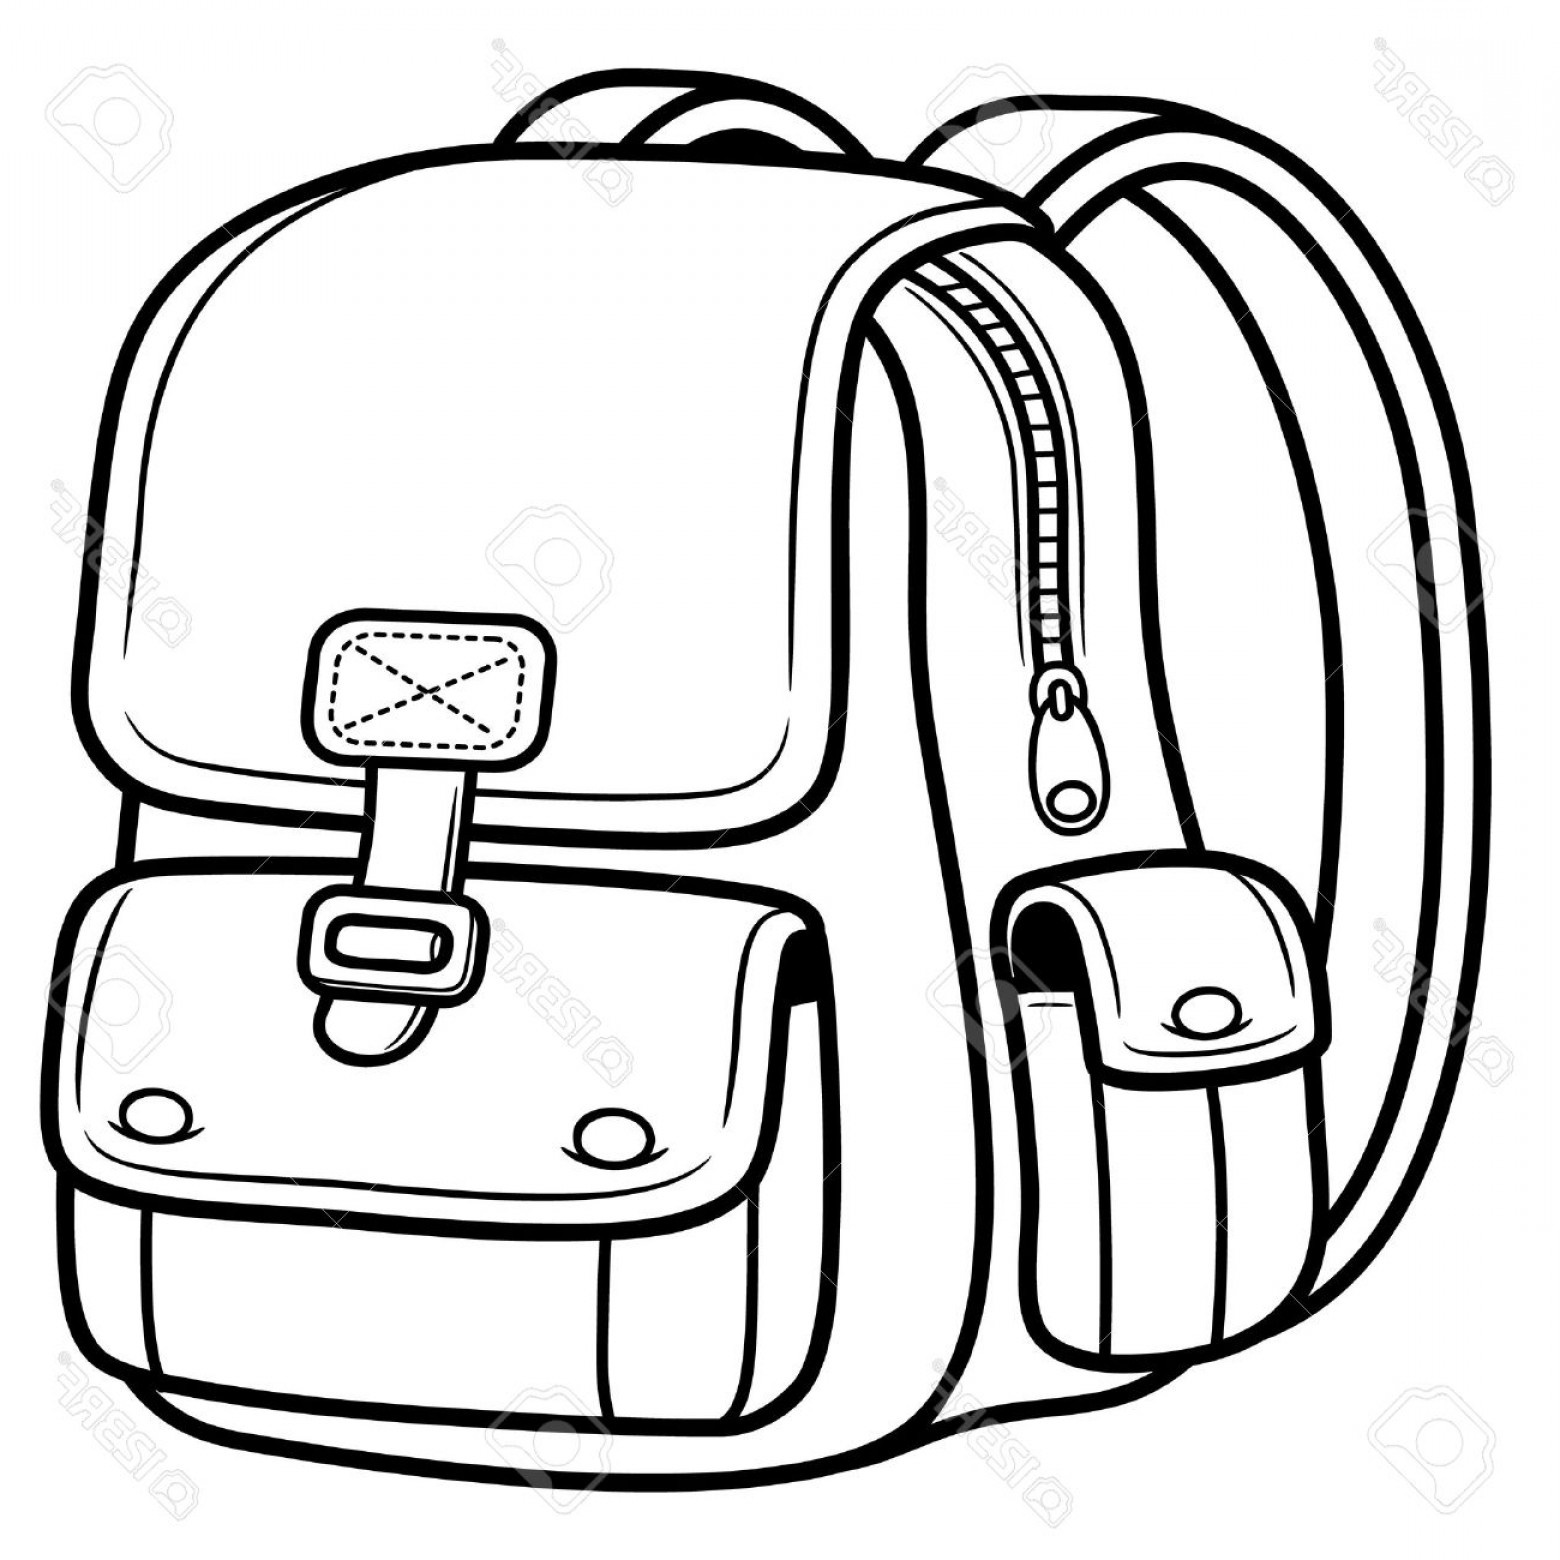 Bag Clipart Black And White.